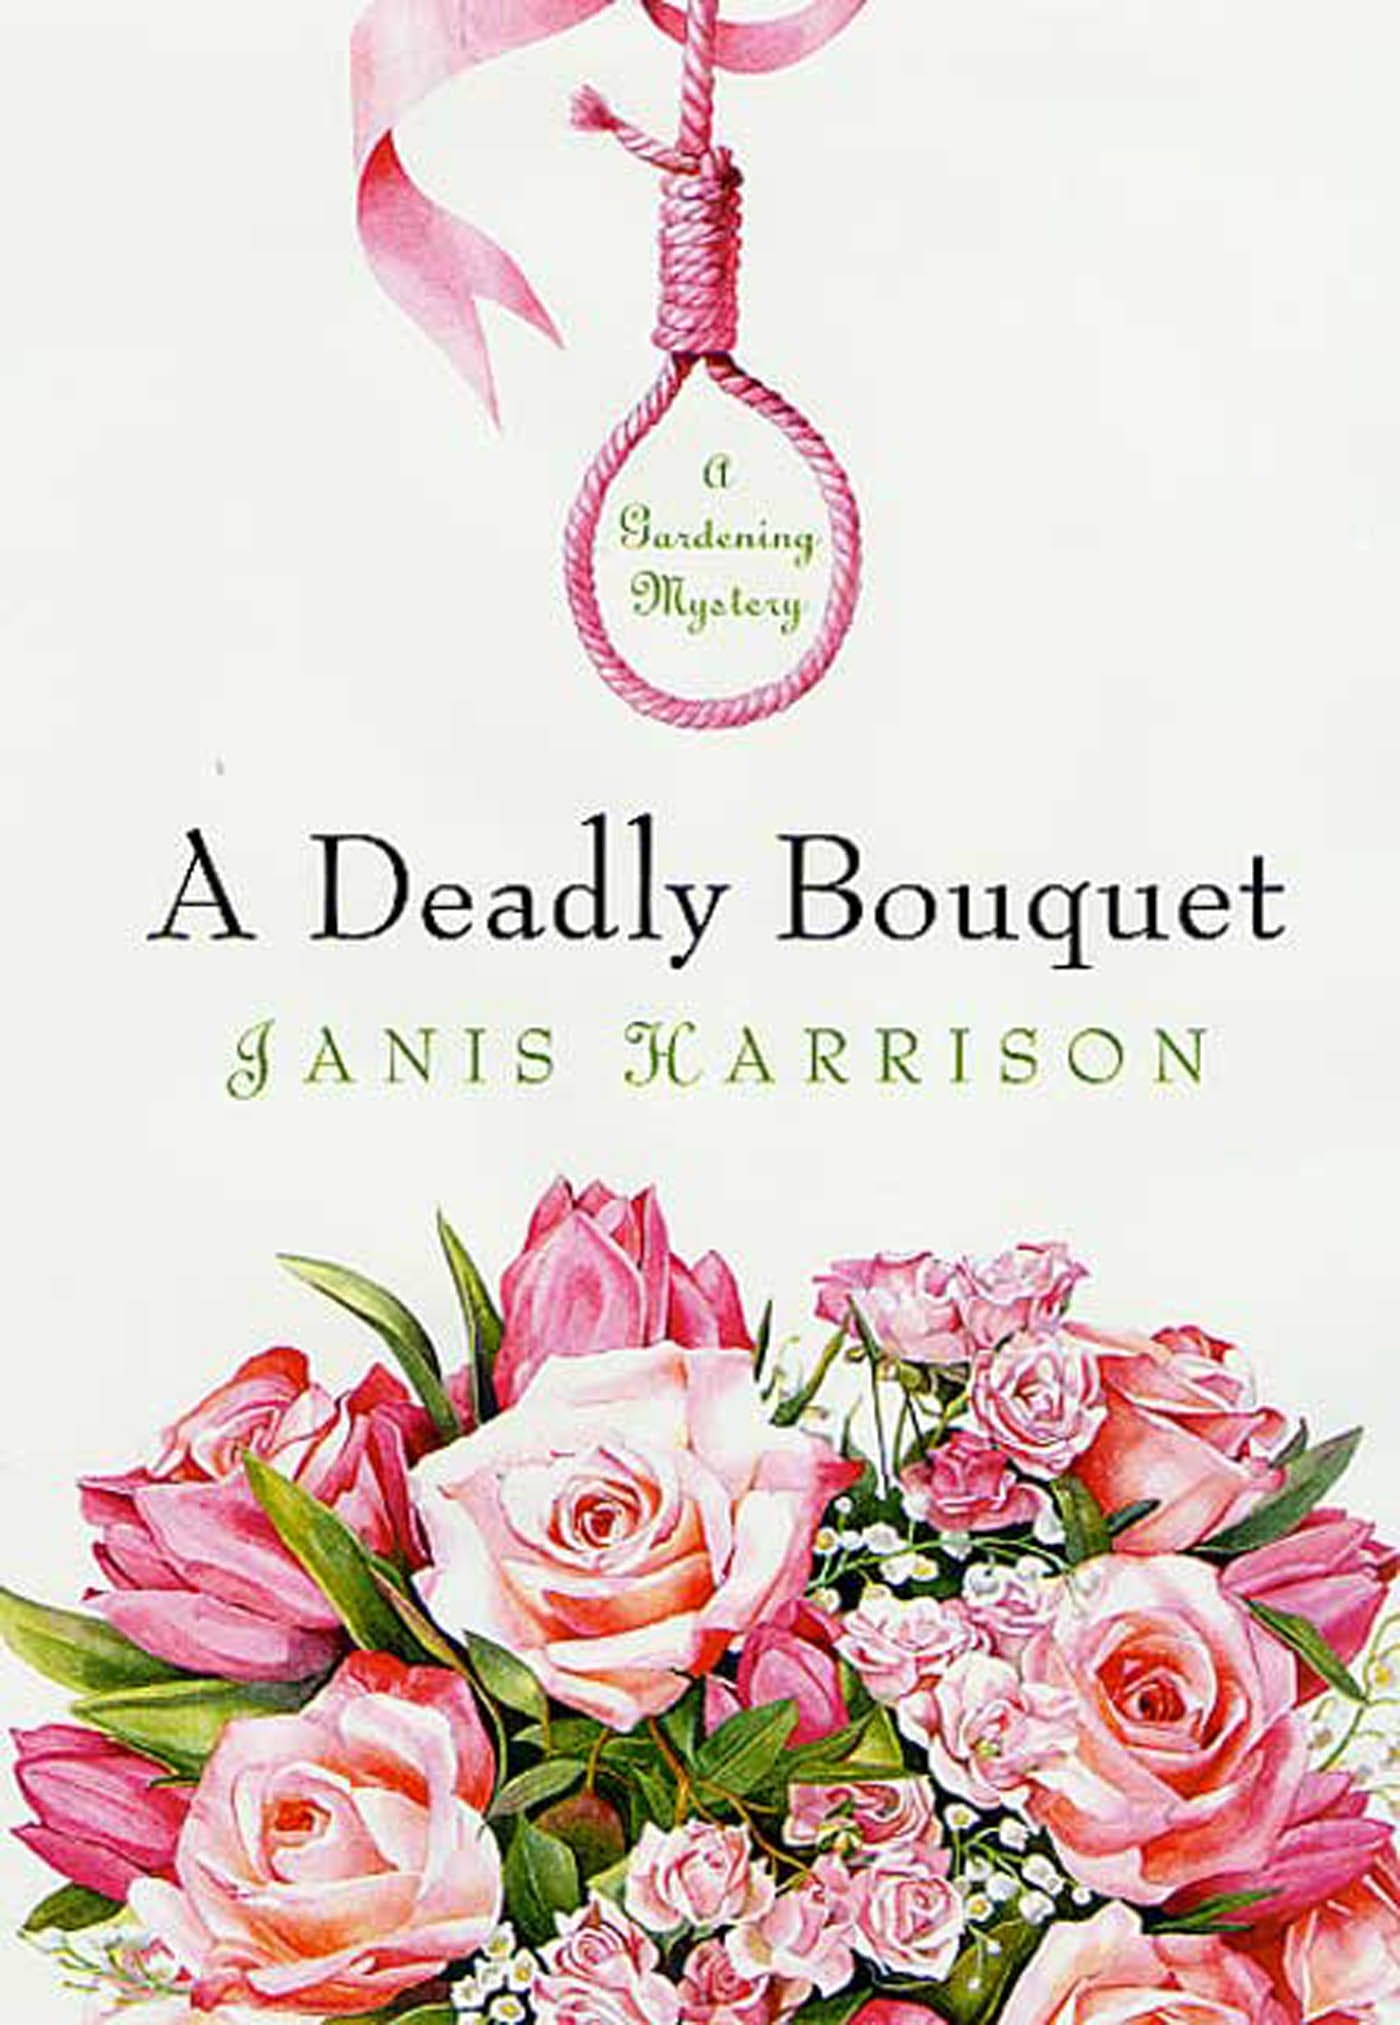 Image of A Deadly Bouquet